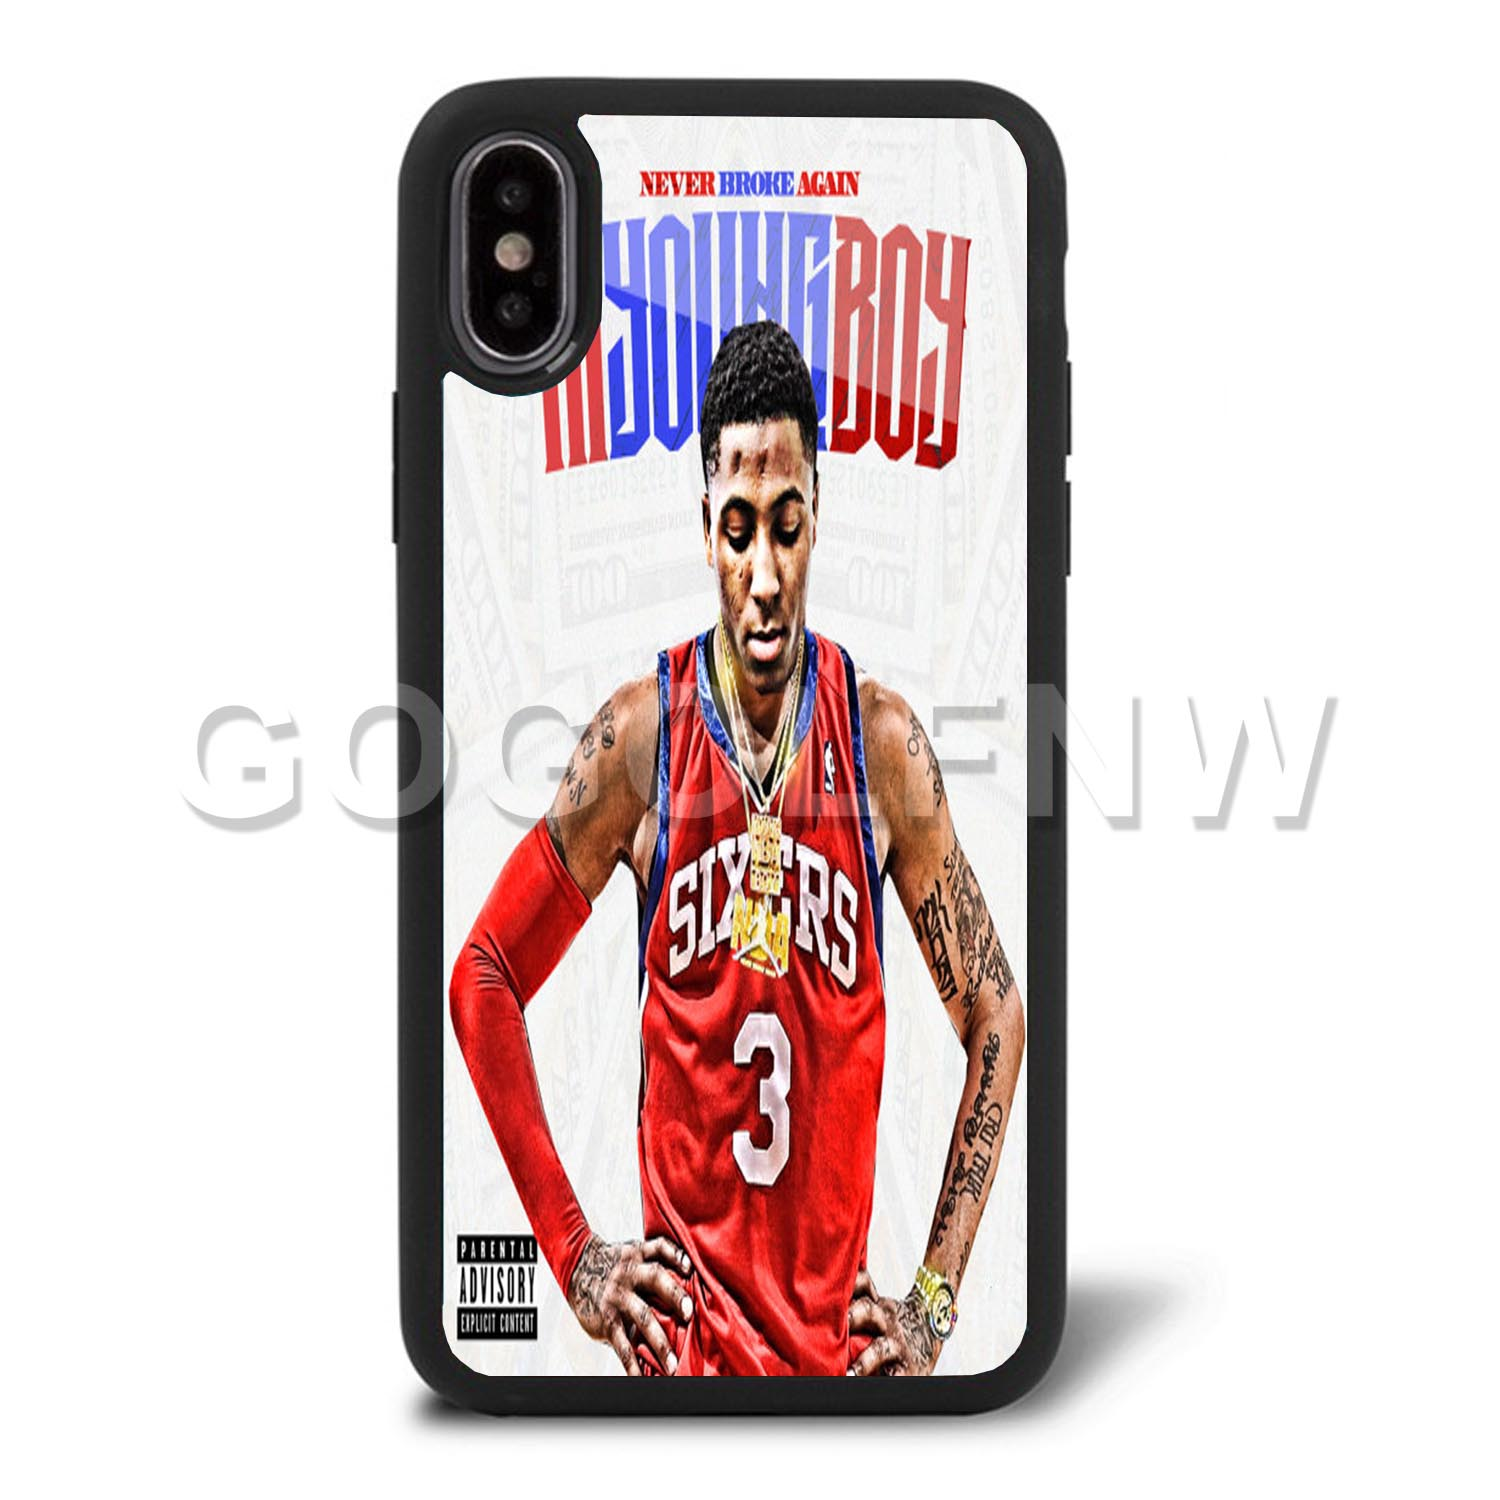 brand new a9f84 672a8 NBA youngboy Phone Case